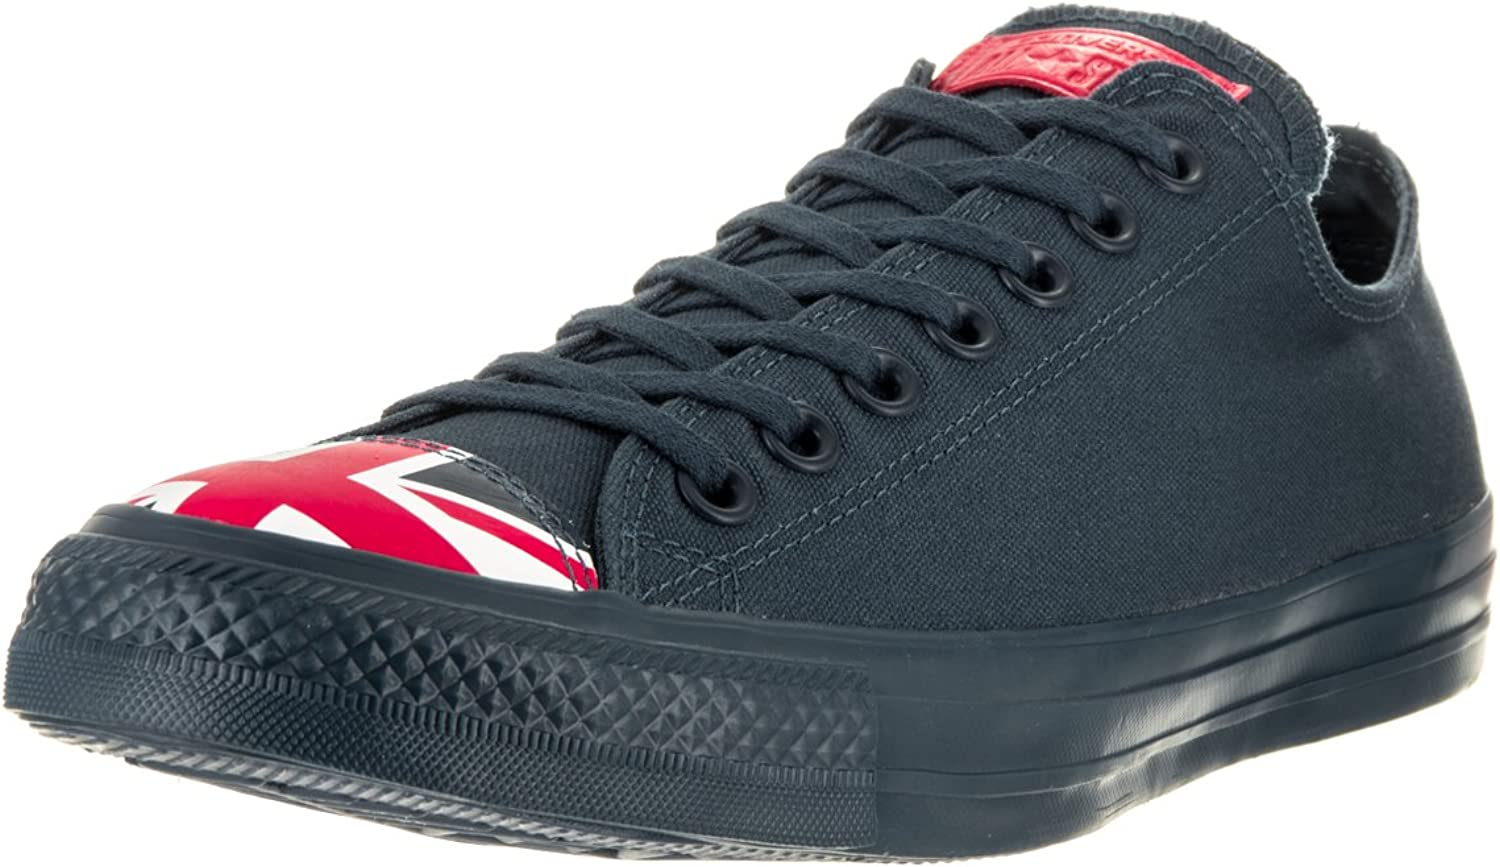 Converse Unisex Chuck Taylor All Star Ox Navy Red Whi Basketball shoes 7.5 Men US   9.5 Women US